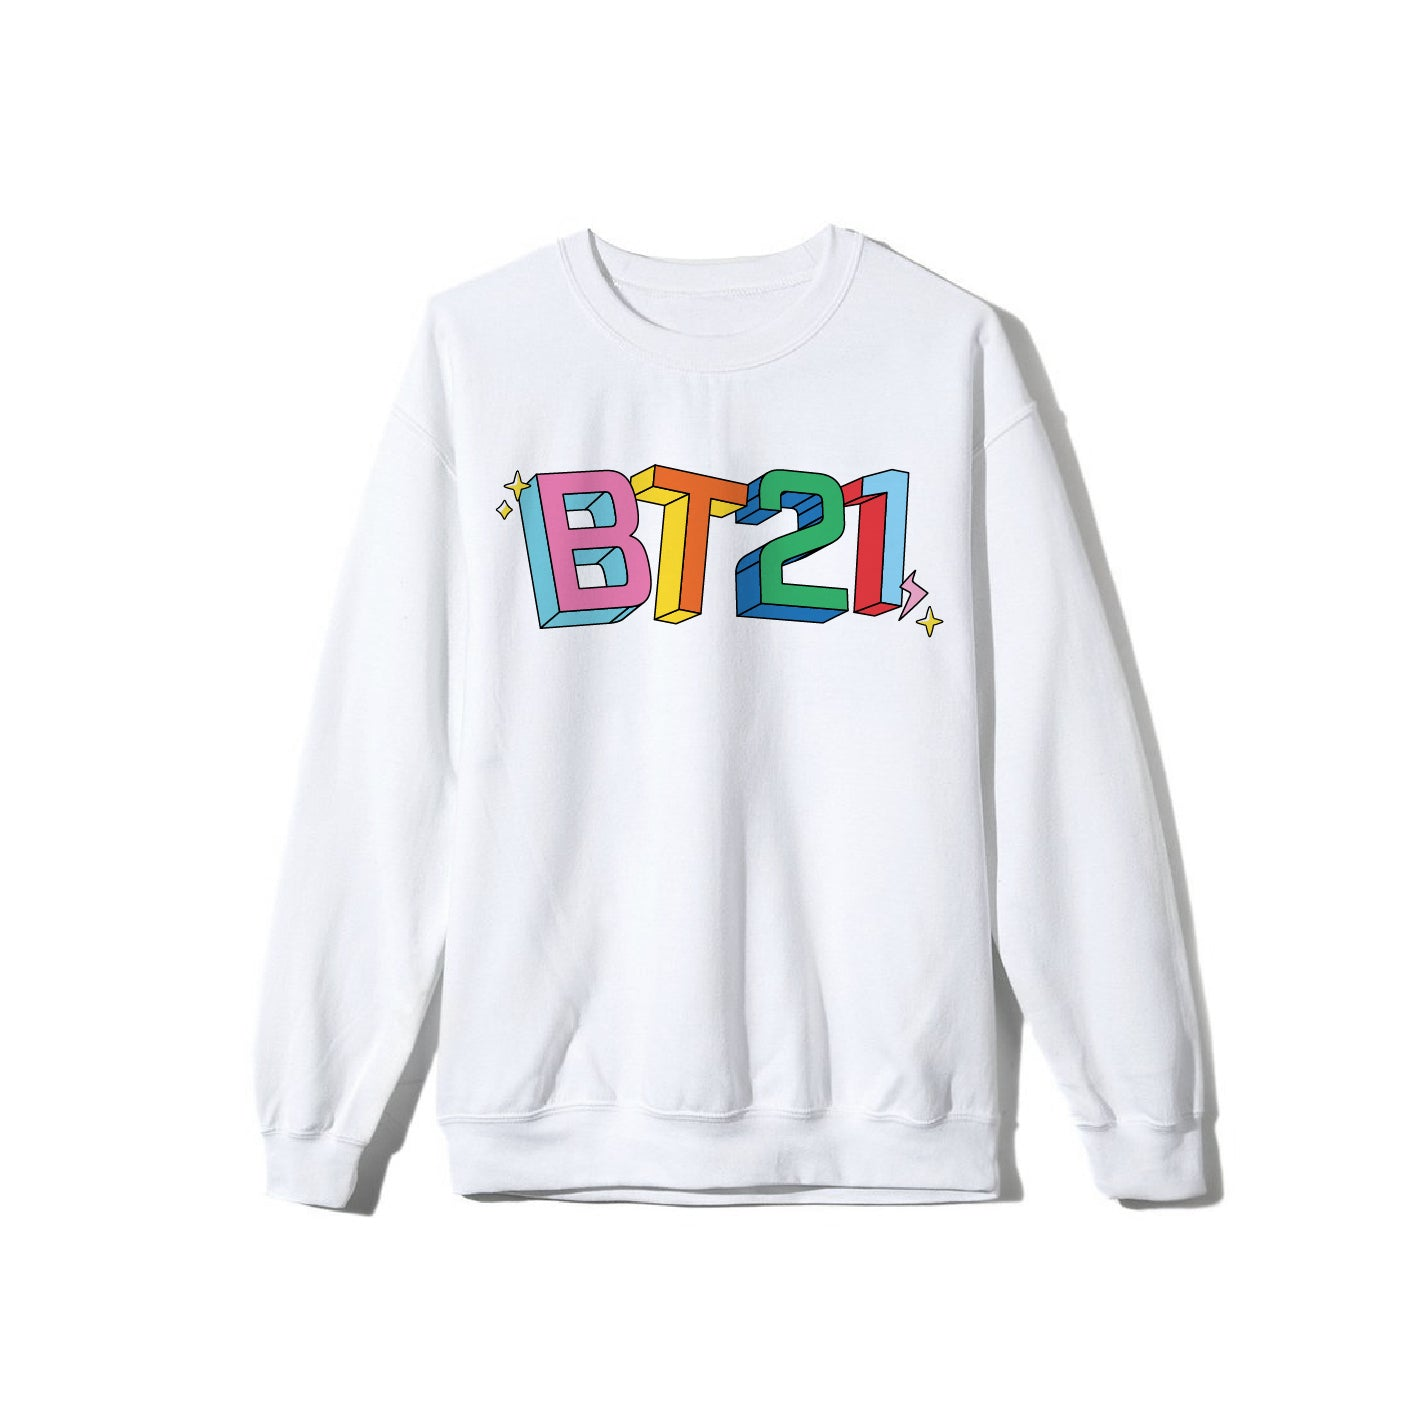 Warped White Long Sleeve Tee